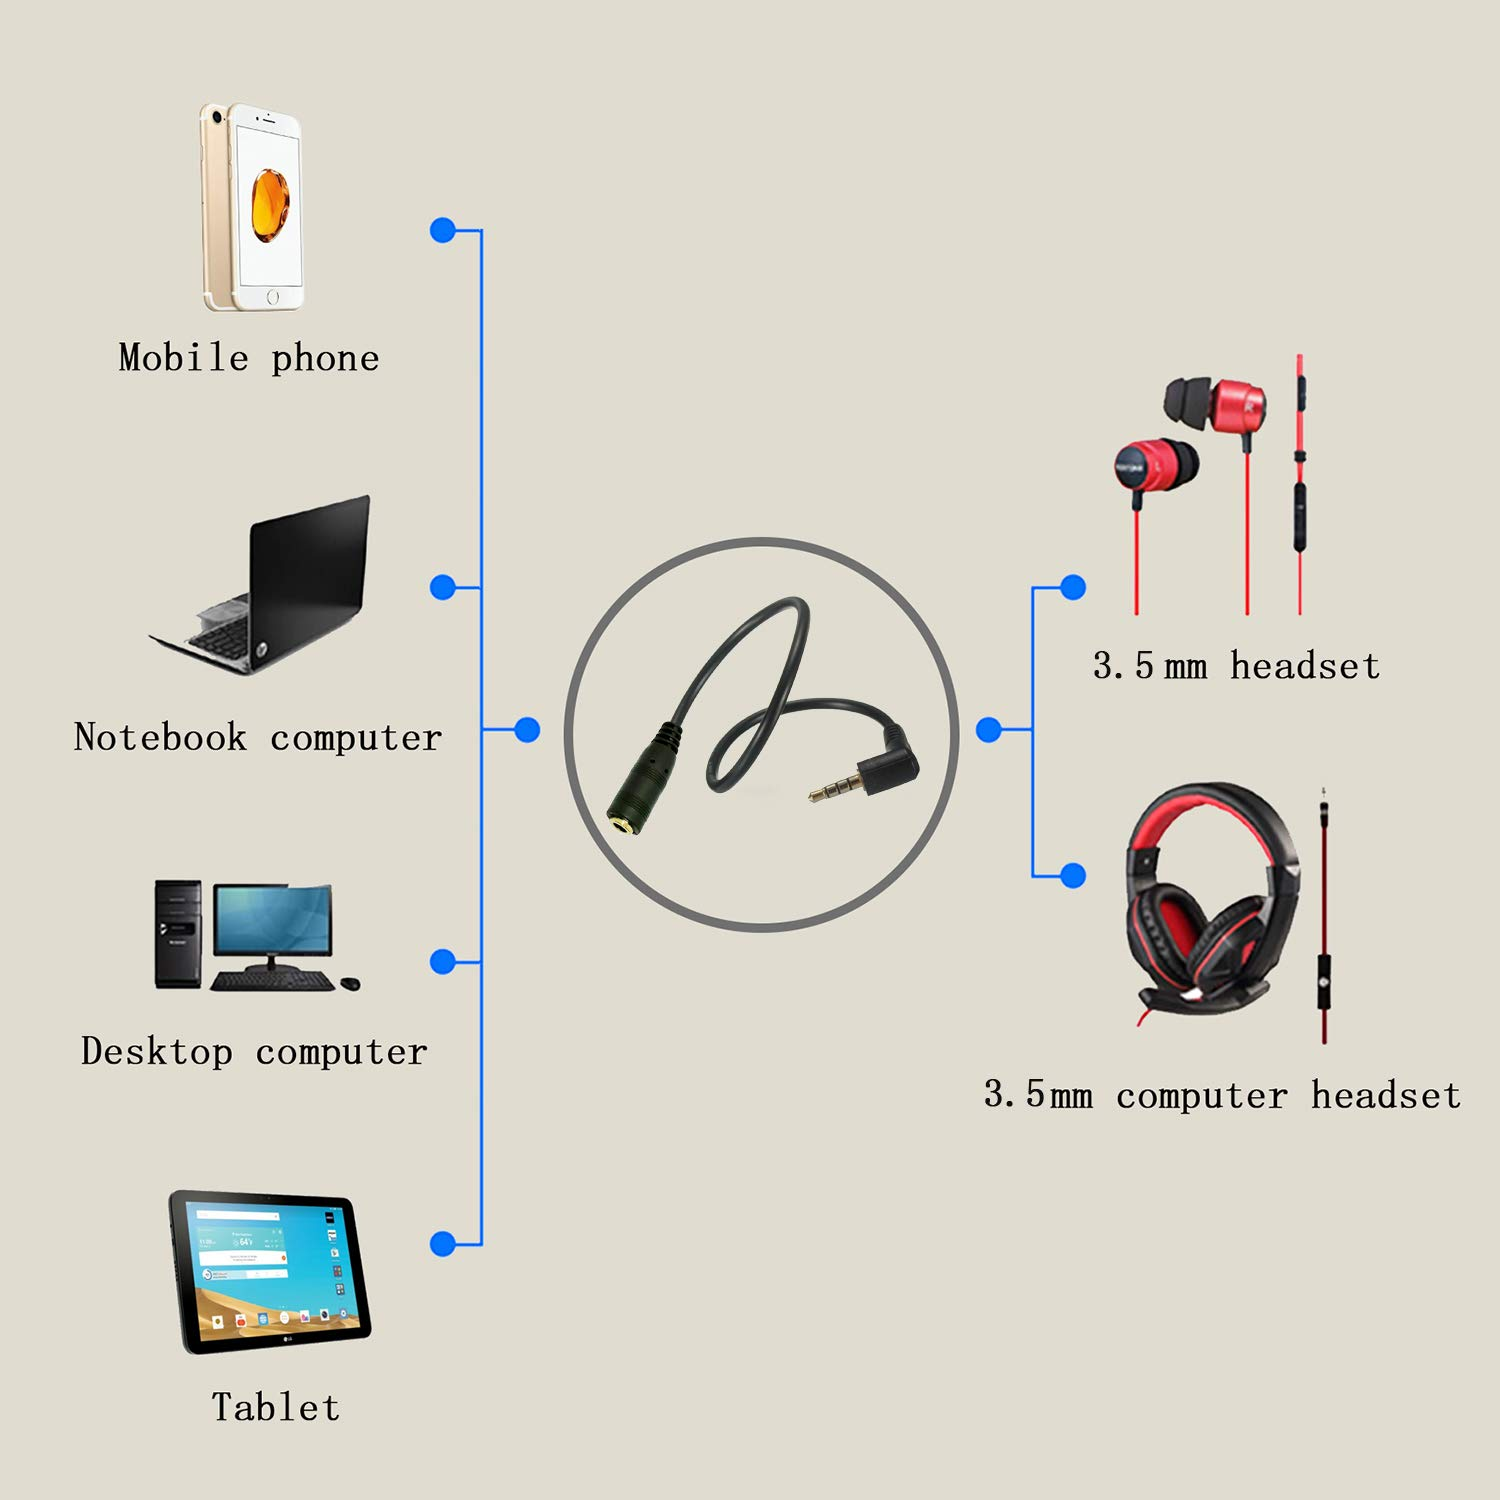 90 Degree Angle 2.5mm Male Pair 3.5mm Female Stereo Audio Jack Adapter Cable Headphone Accessory Extension Cord